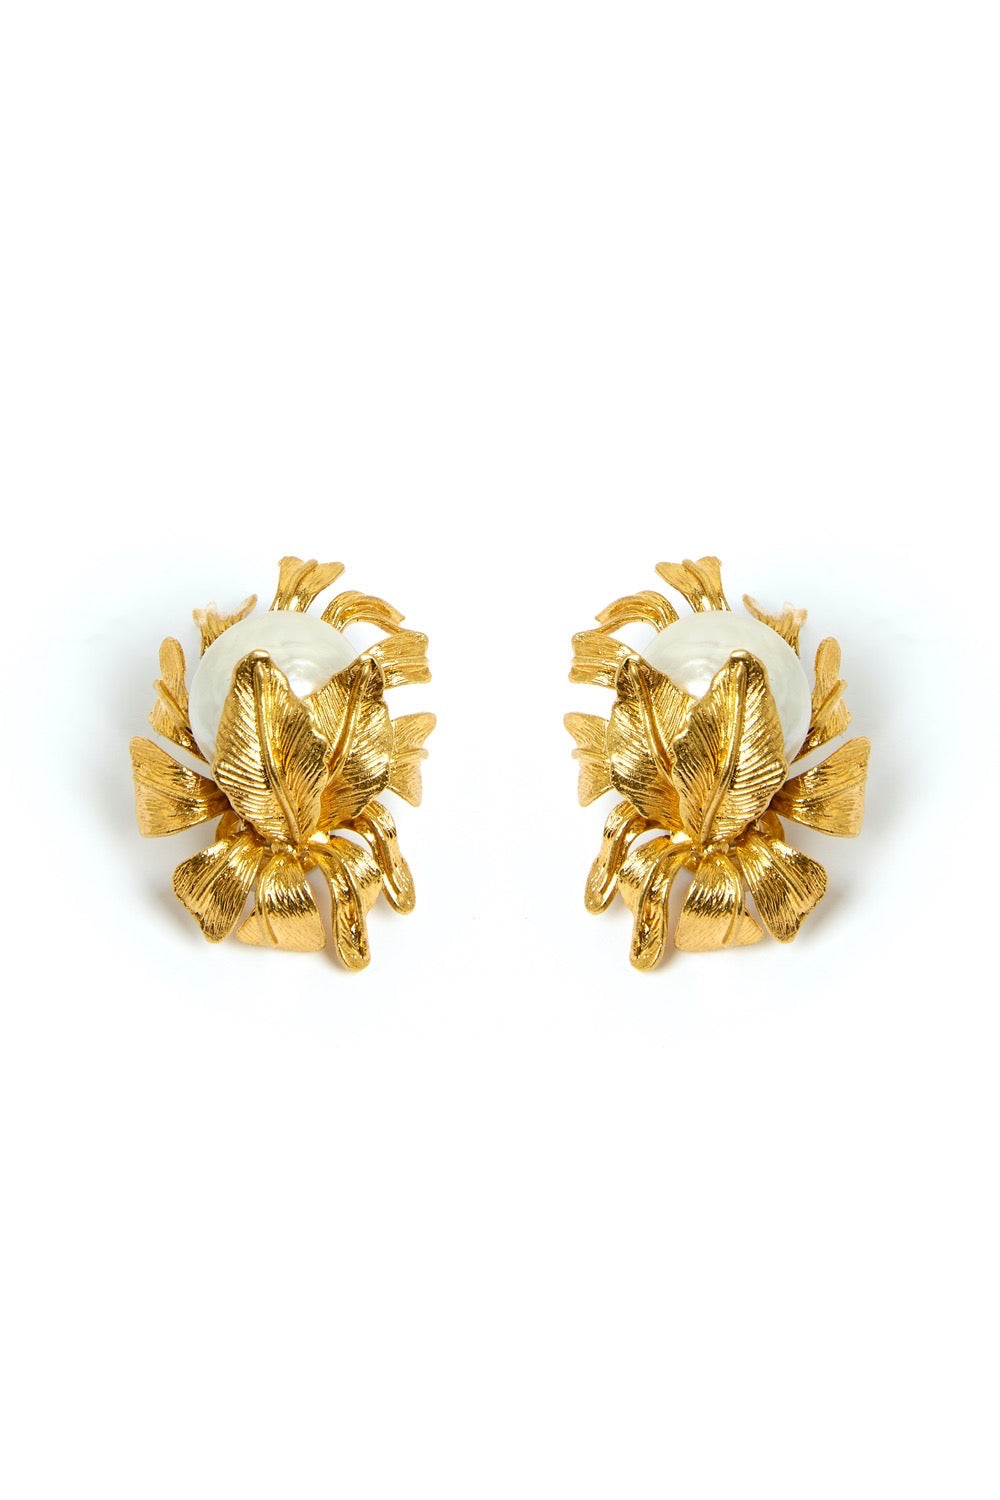 PRE-ORDER FOR NOVEMBER 25th - Moon Flower Earrings Gold